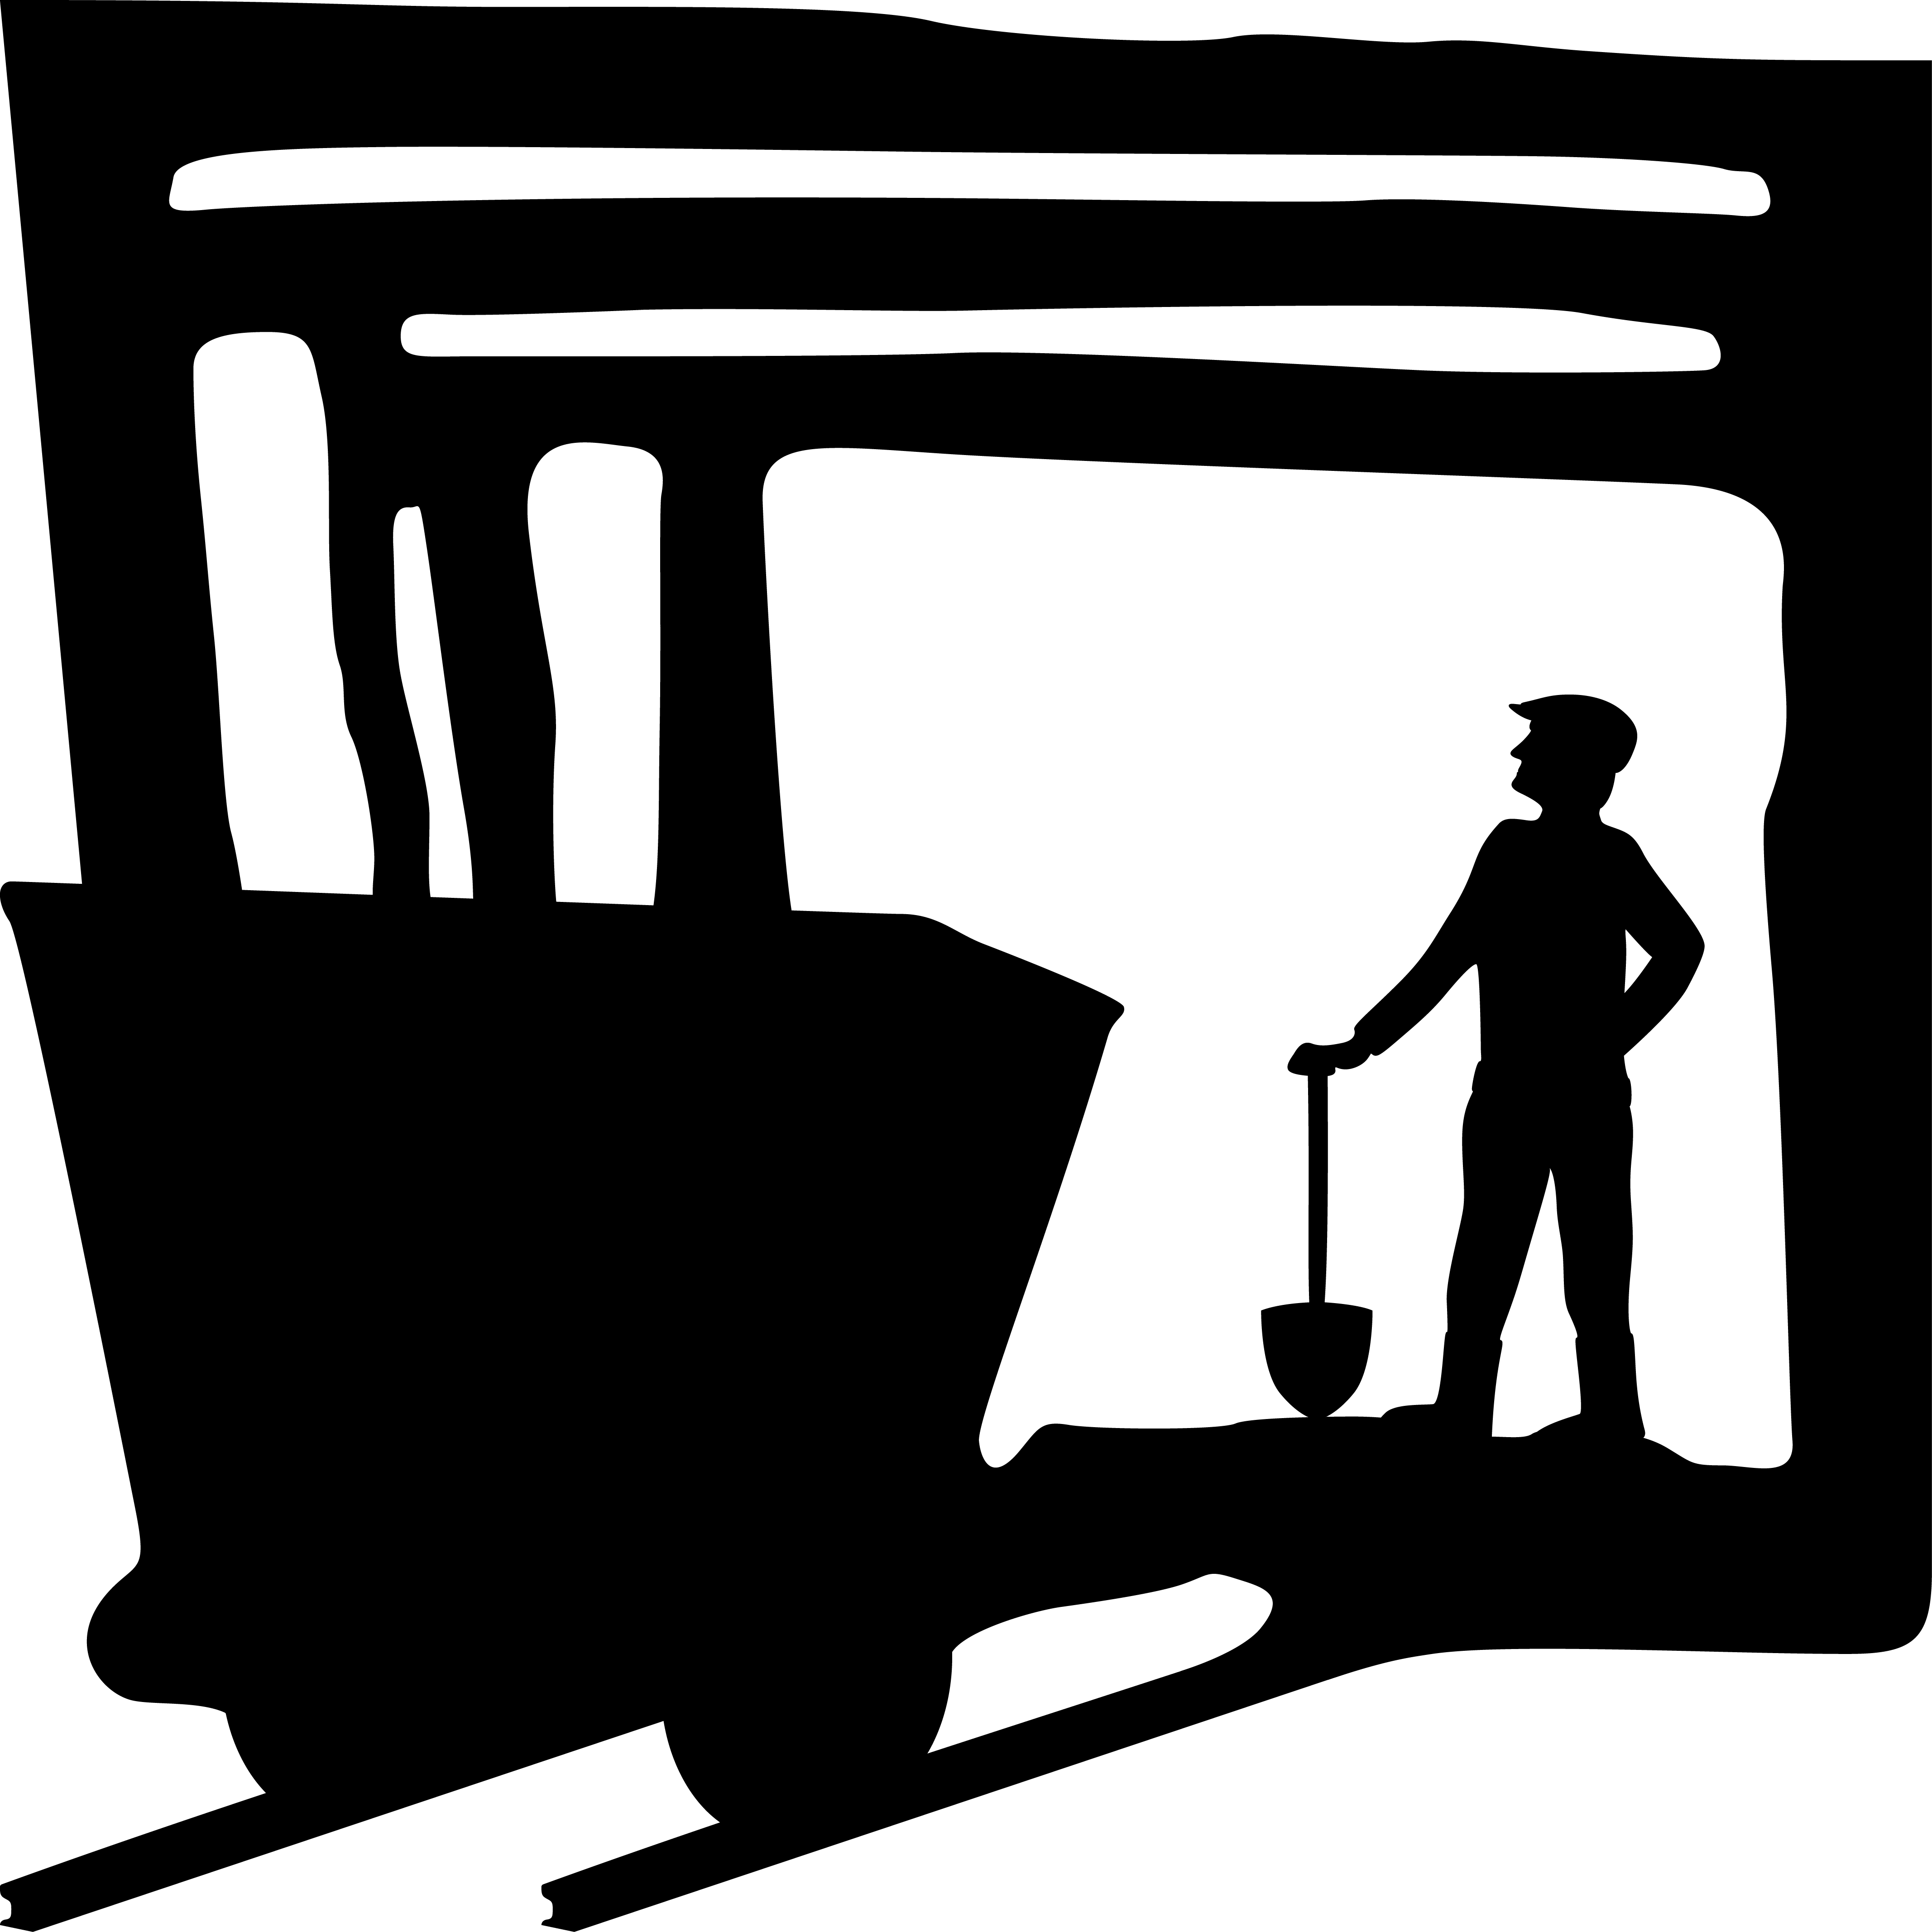 clip free Home cleveland ironstone mining. Coal clipart mine entrance.